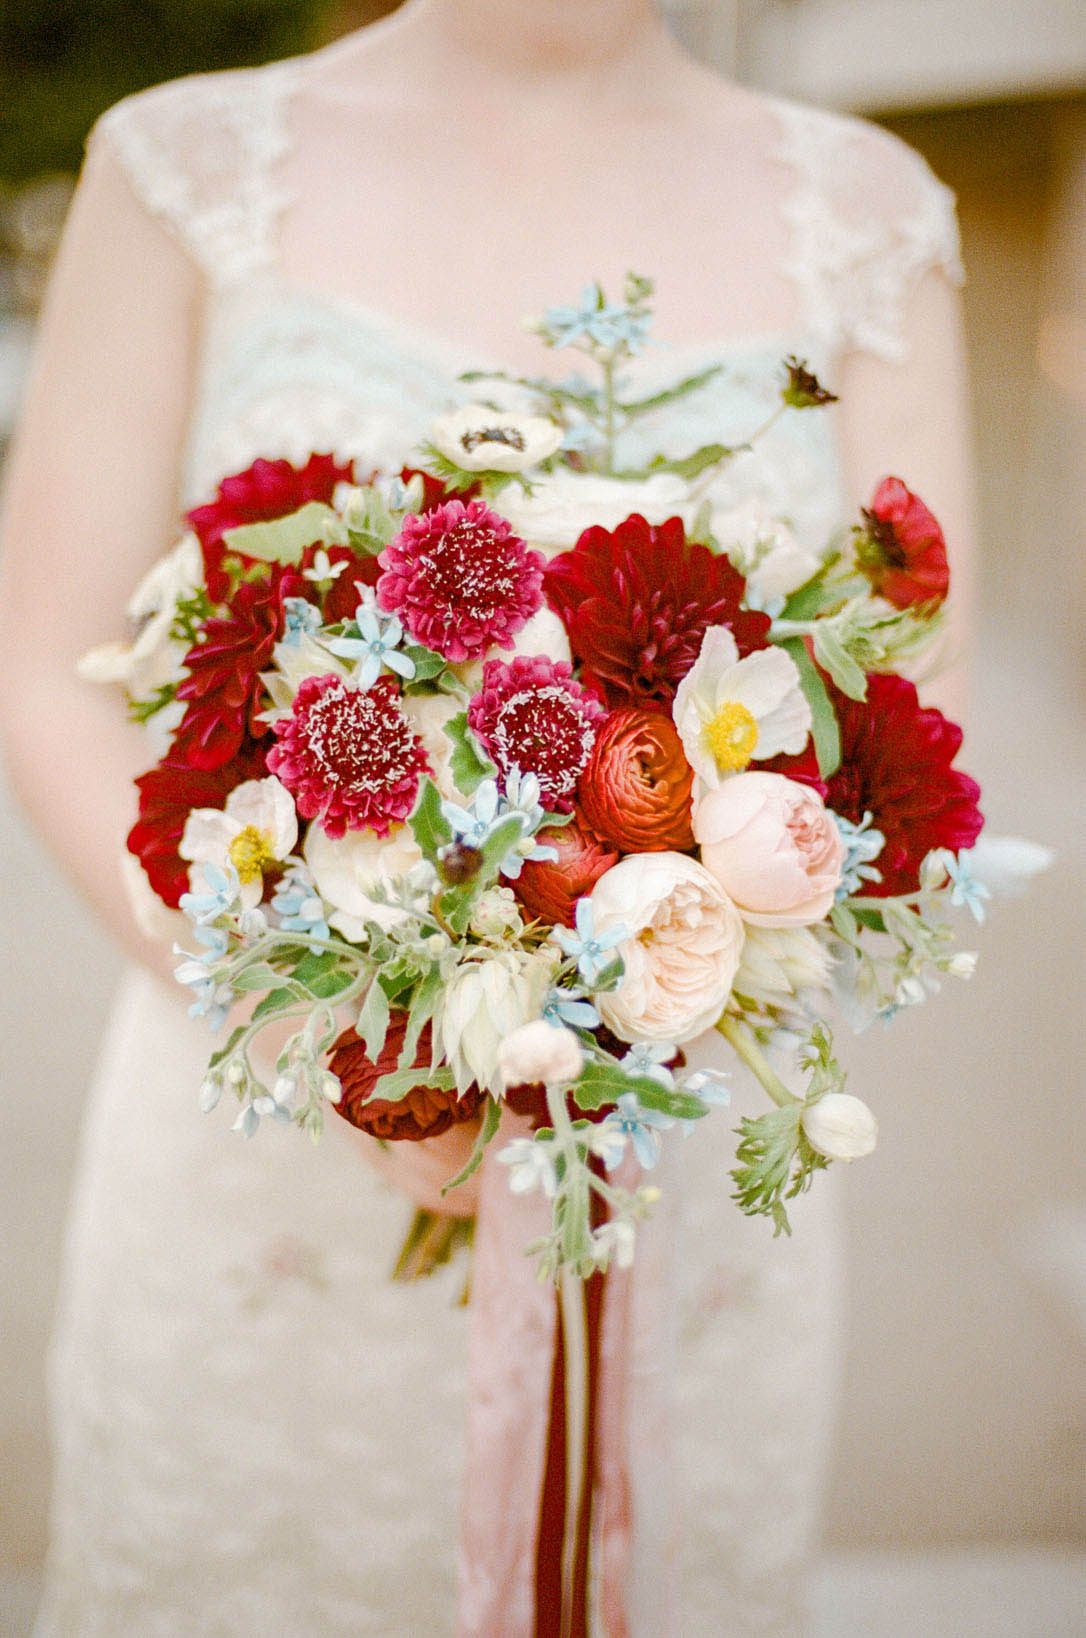 4-red-bridal-bouquet.jpg